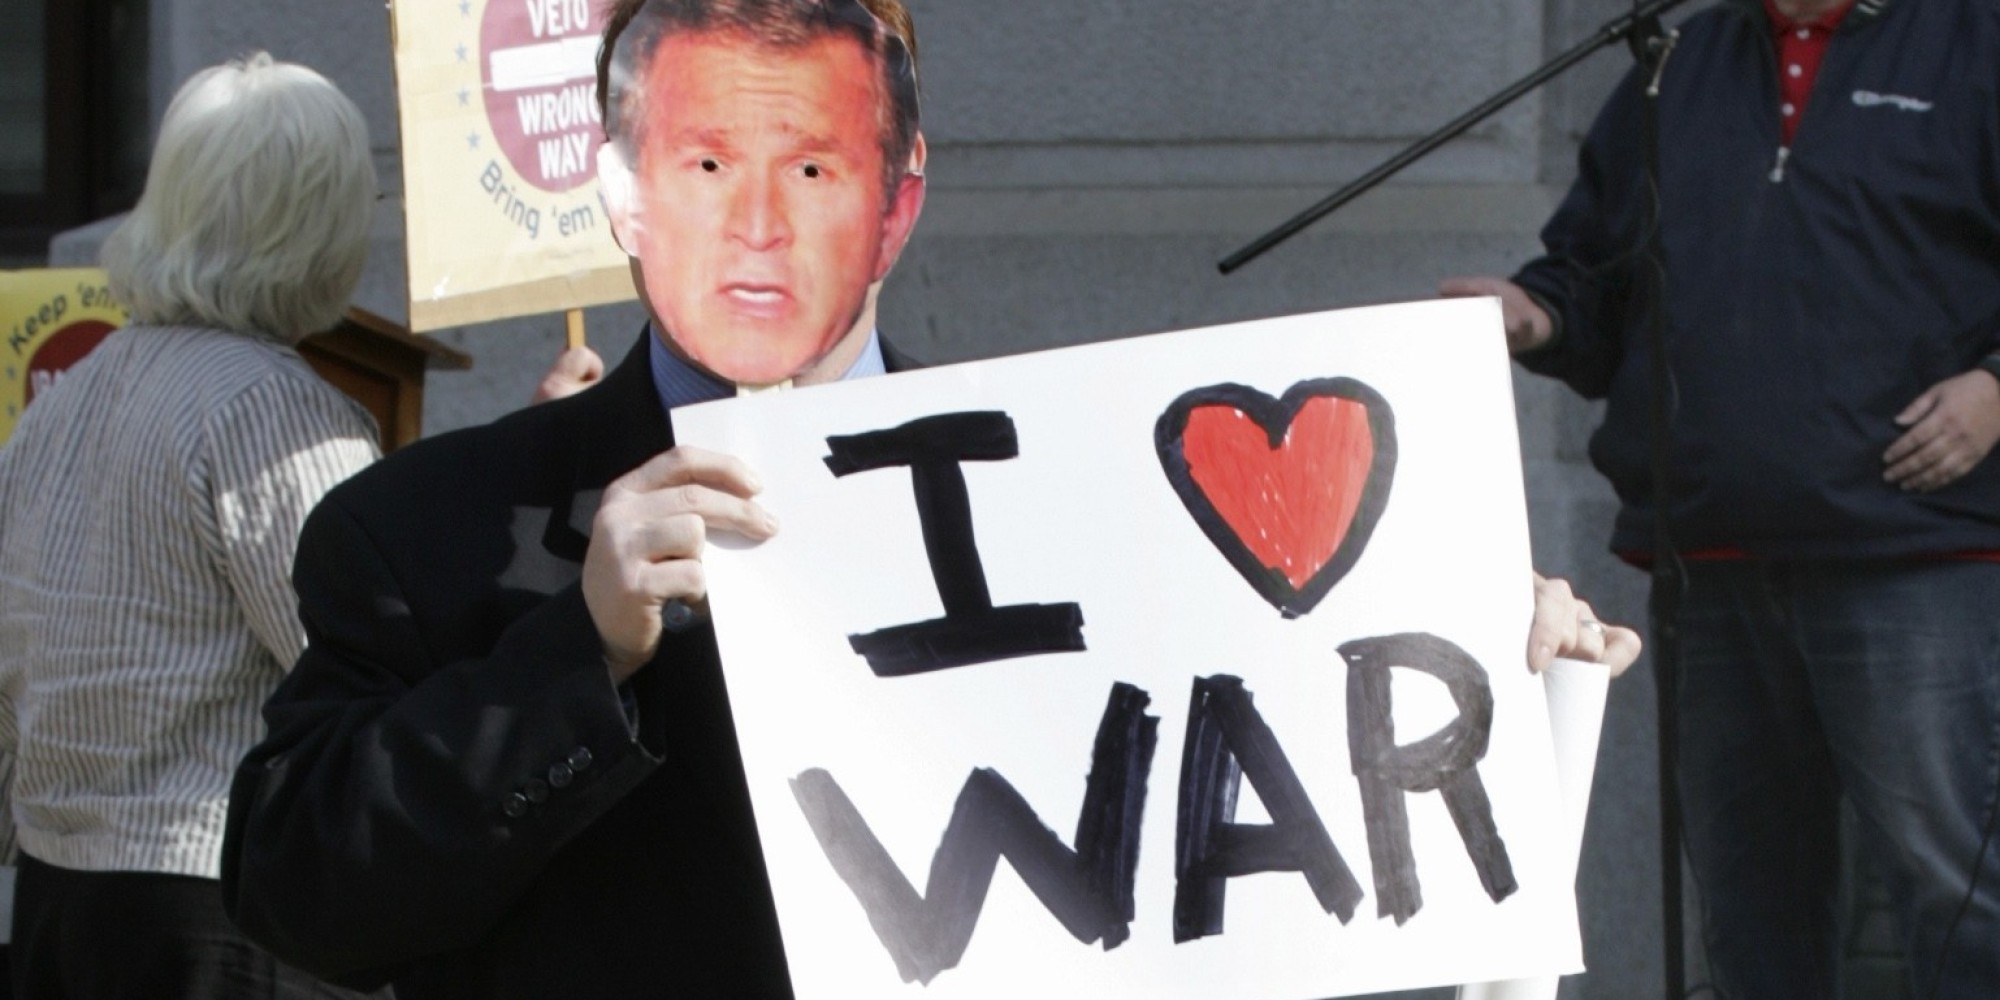 o IRAQ WAR GEORGE BUSH facebook